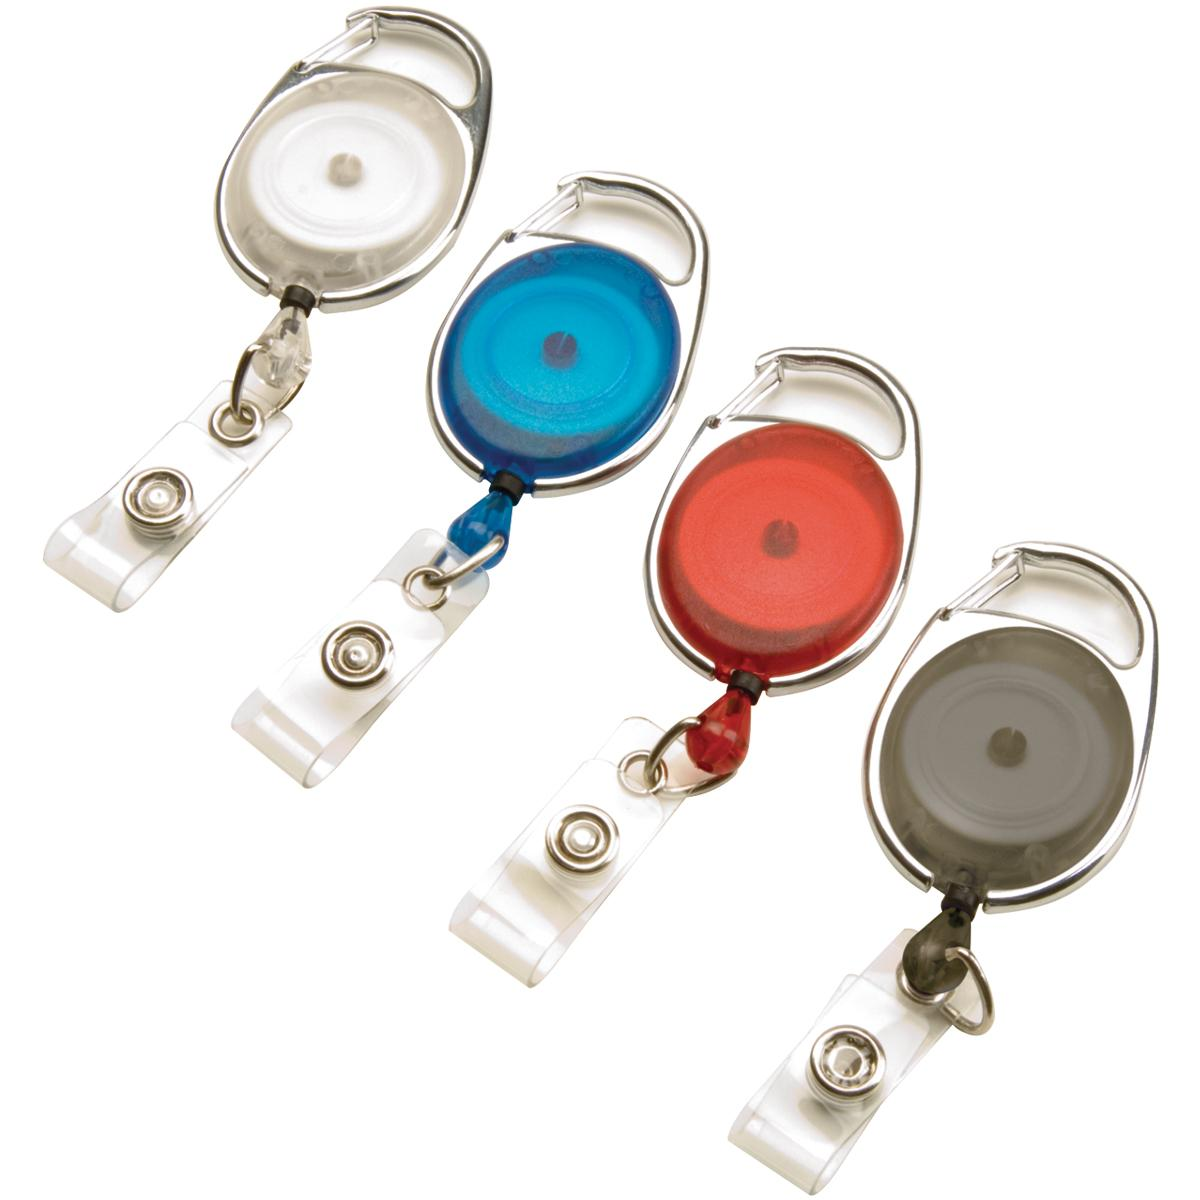 Swingline GBC Retractable Badge Holder, ID Holder, Carabiner Badge Reel,  BadgeMates, Assorted Colors, 4 Pack (3747498)